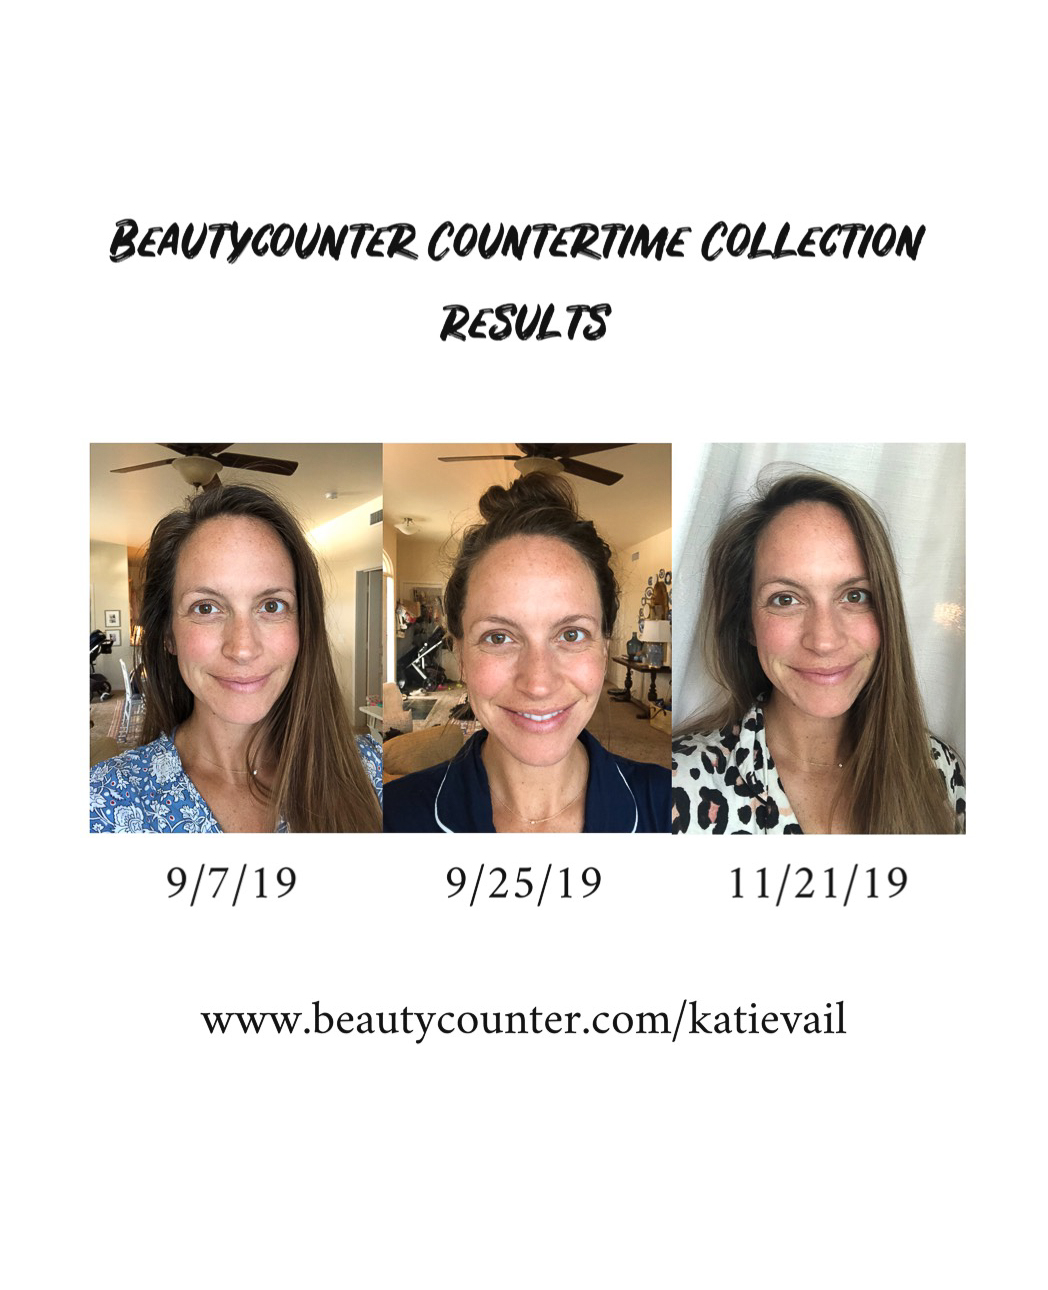 beautycounter black friday - beautycounter holiday gifts - christmas gifts - clean beauty gift ideas - clean beauty skincare - beautycounter makeup - countertime anti-aging skincare line - countertime before and after results